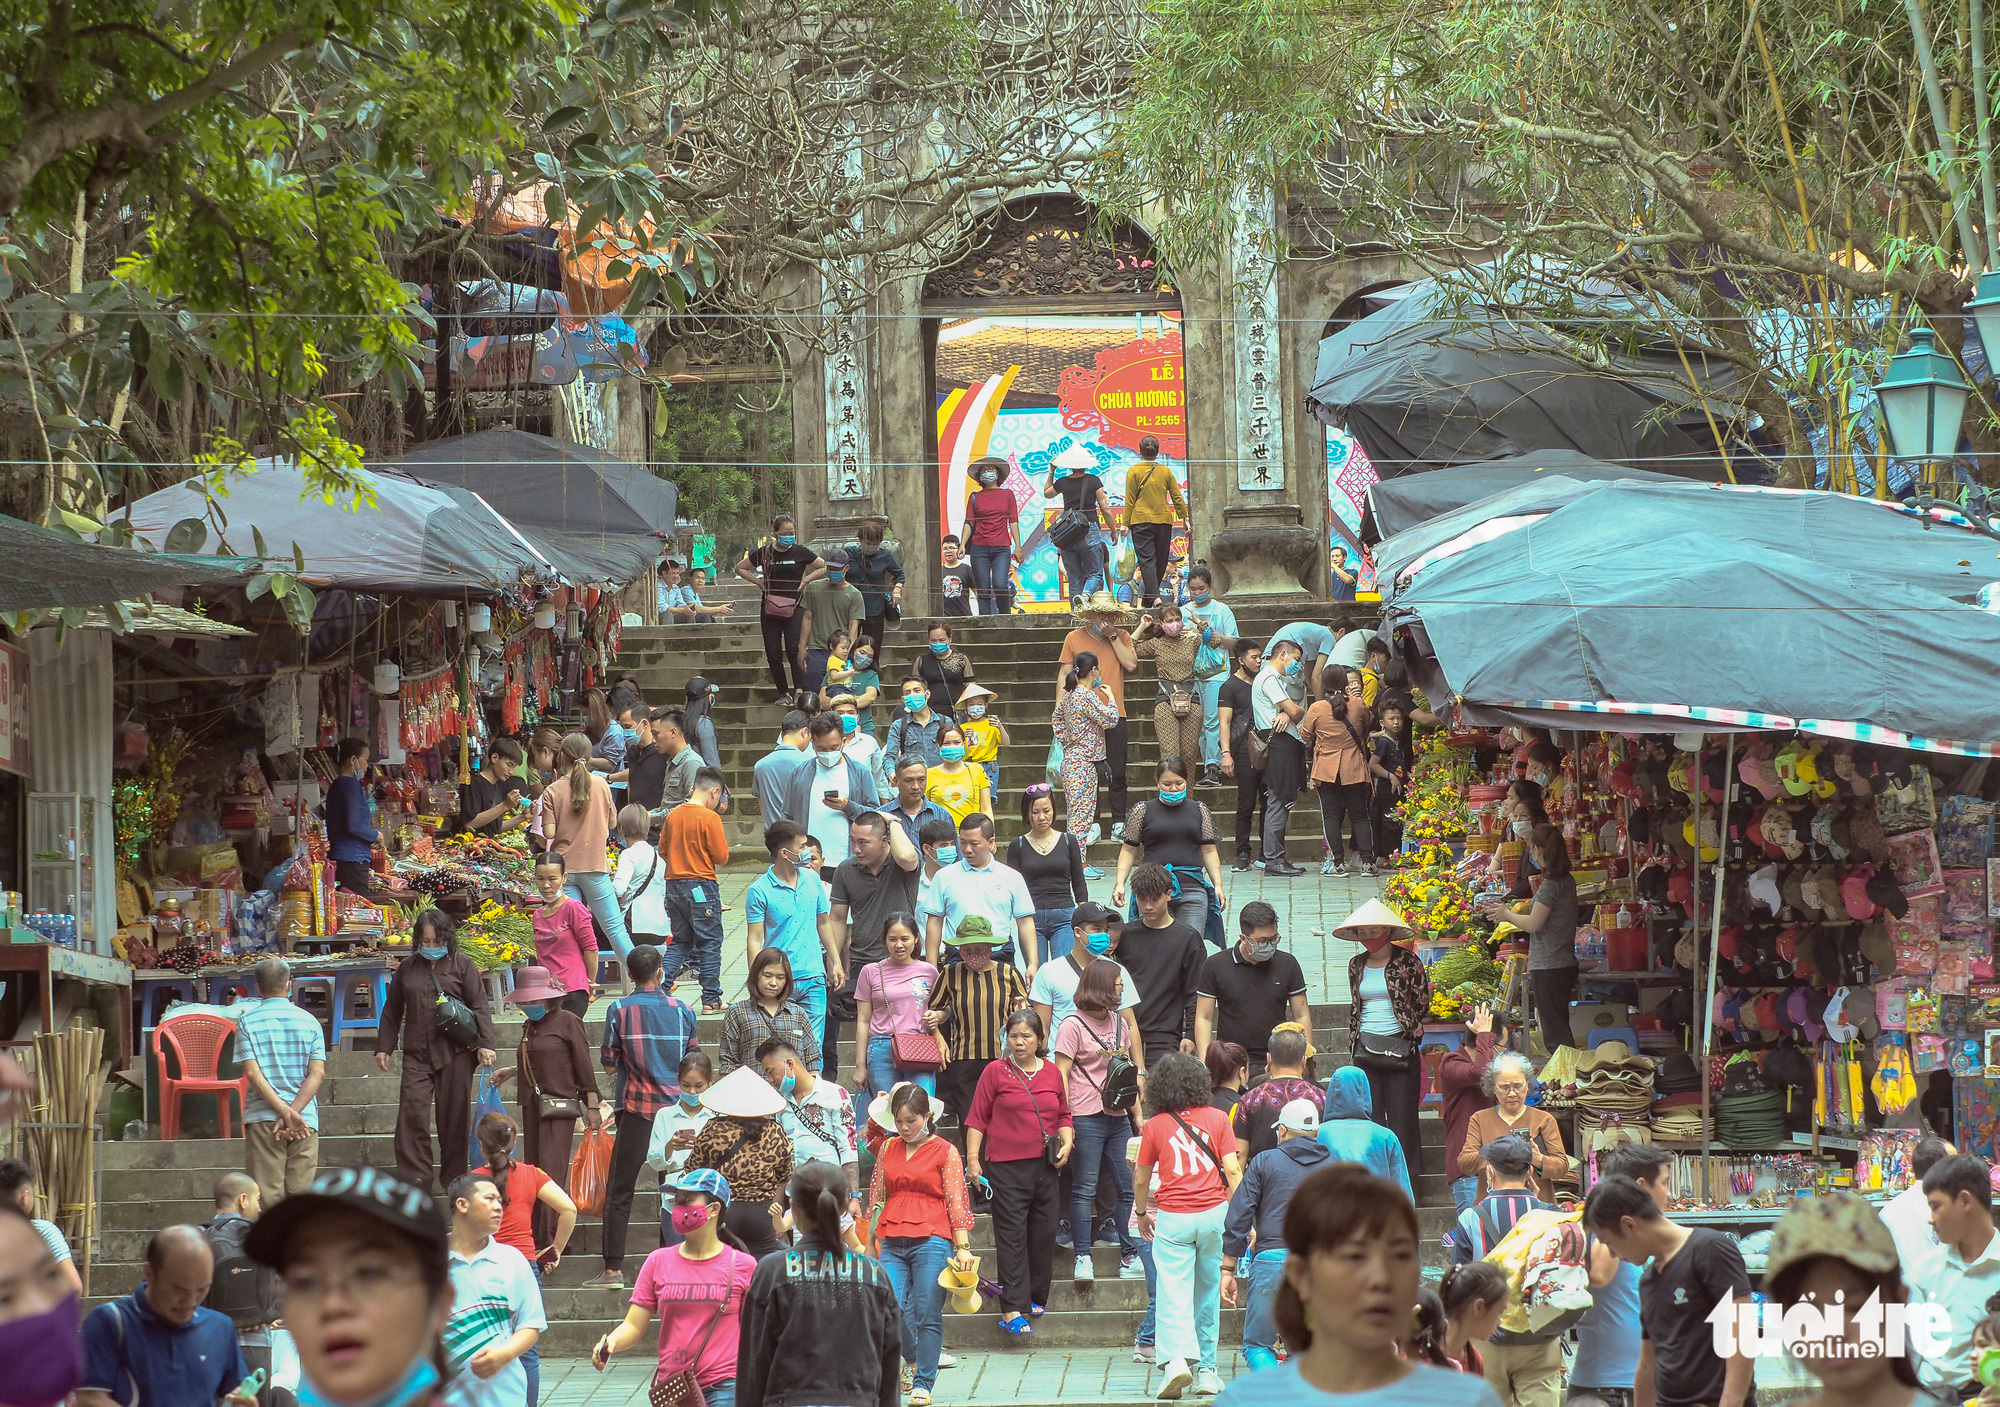 Visitors crowd Huong Pagoda Festival in Hanoi without face masks